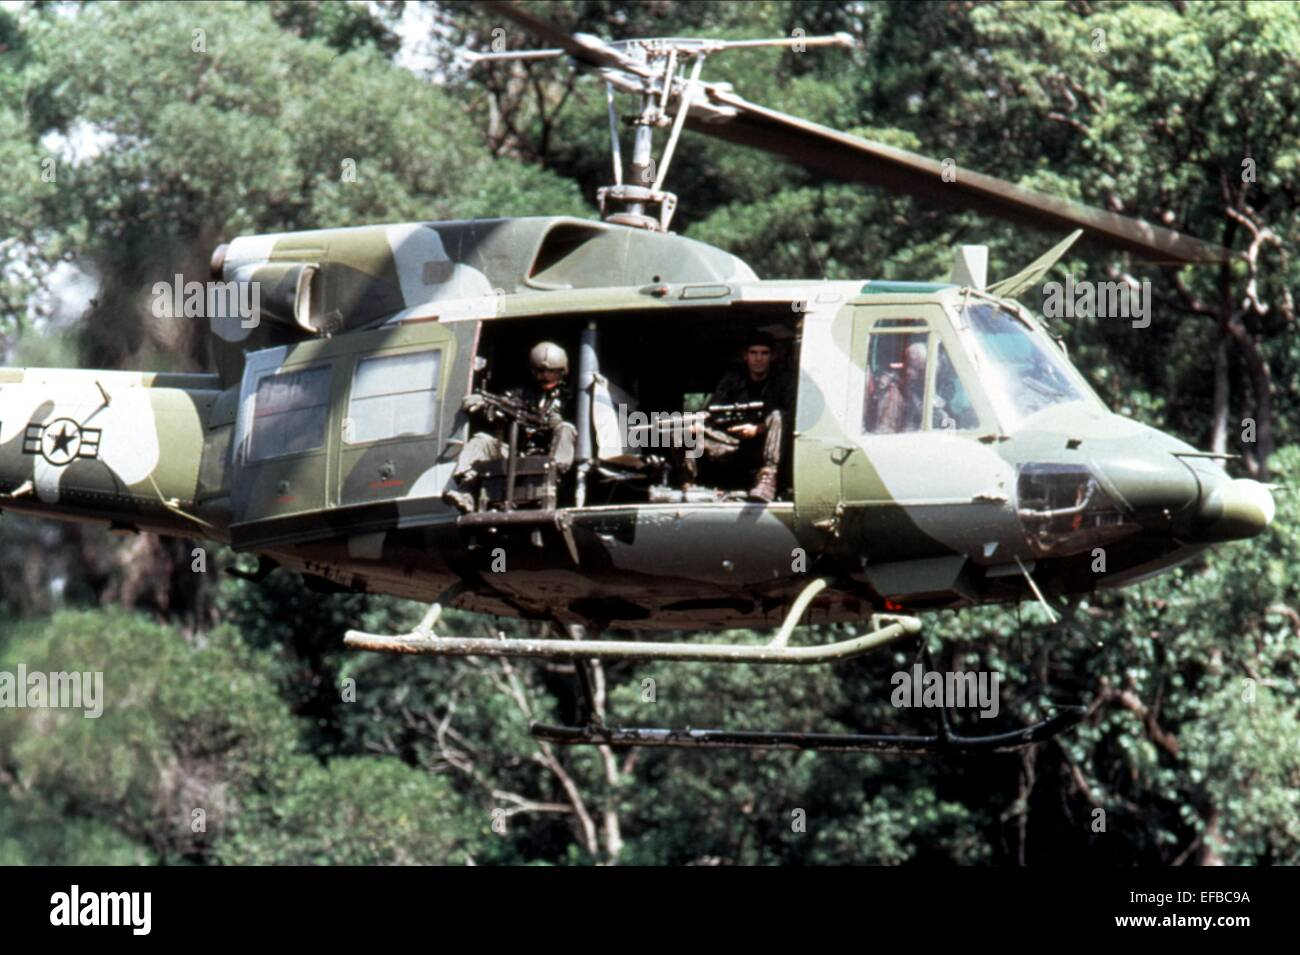 SCENE WITH HELICOPTER SNIPER (1993) - Stock Image